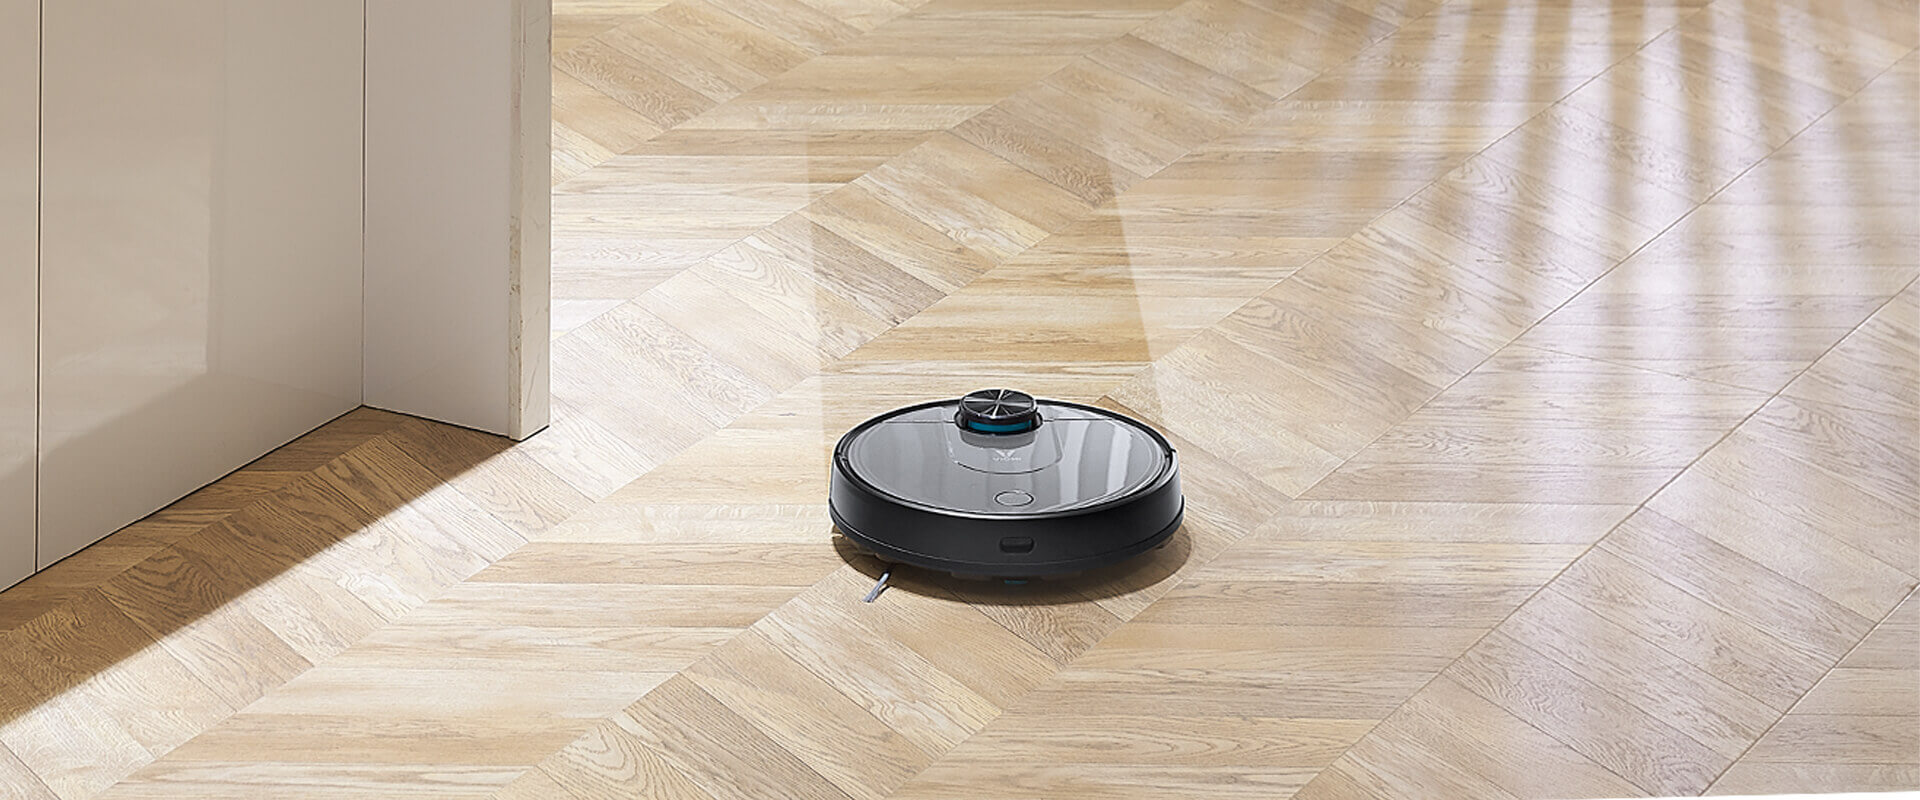 Viomi V2 Pro house cleaning robot with Large Water Tank